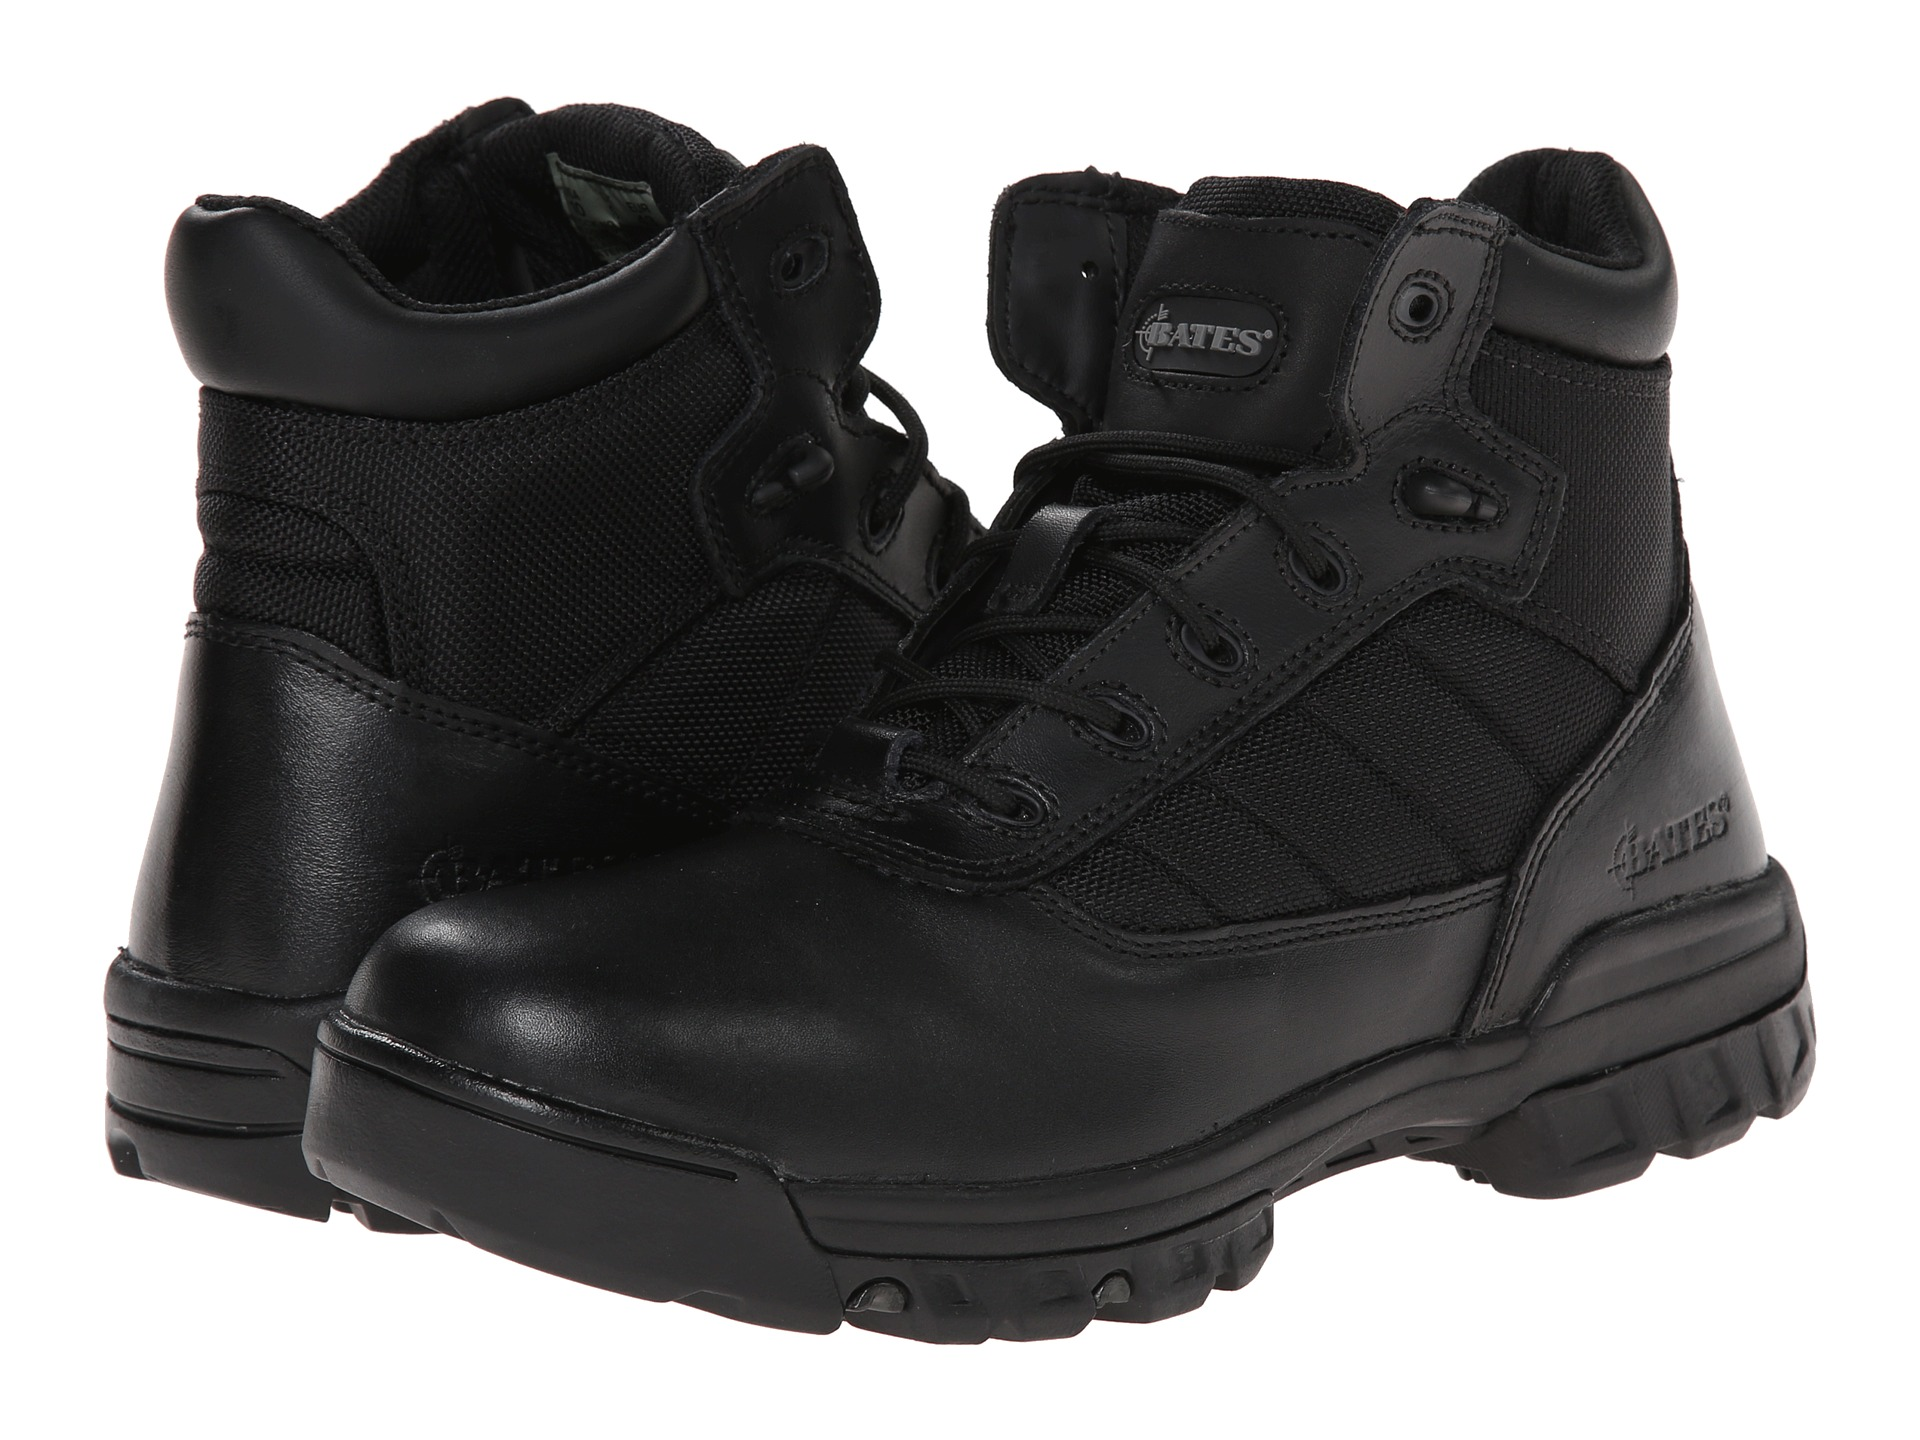 Boots, Men, Work & Duty | Shipped Free at Zappos